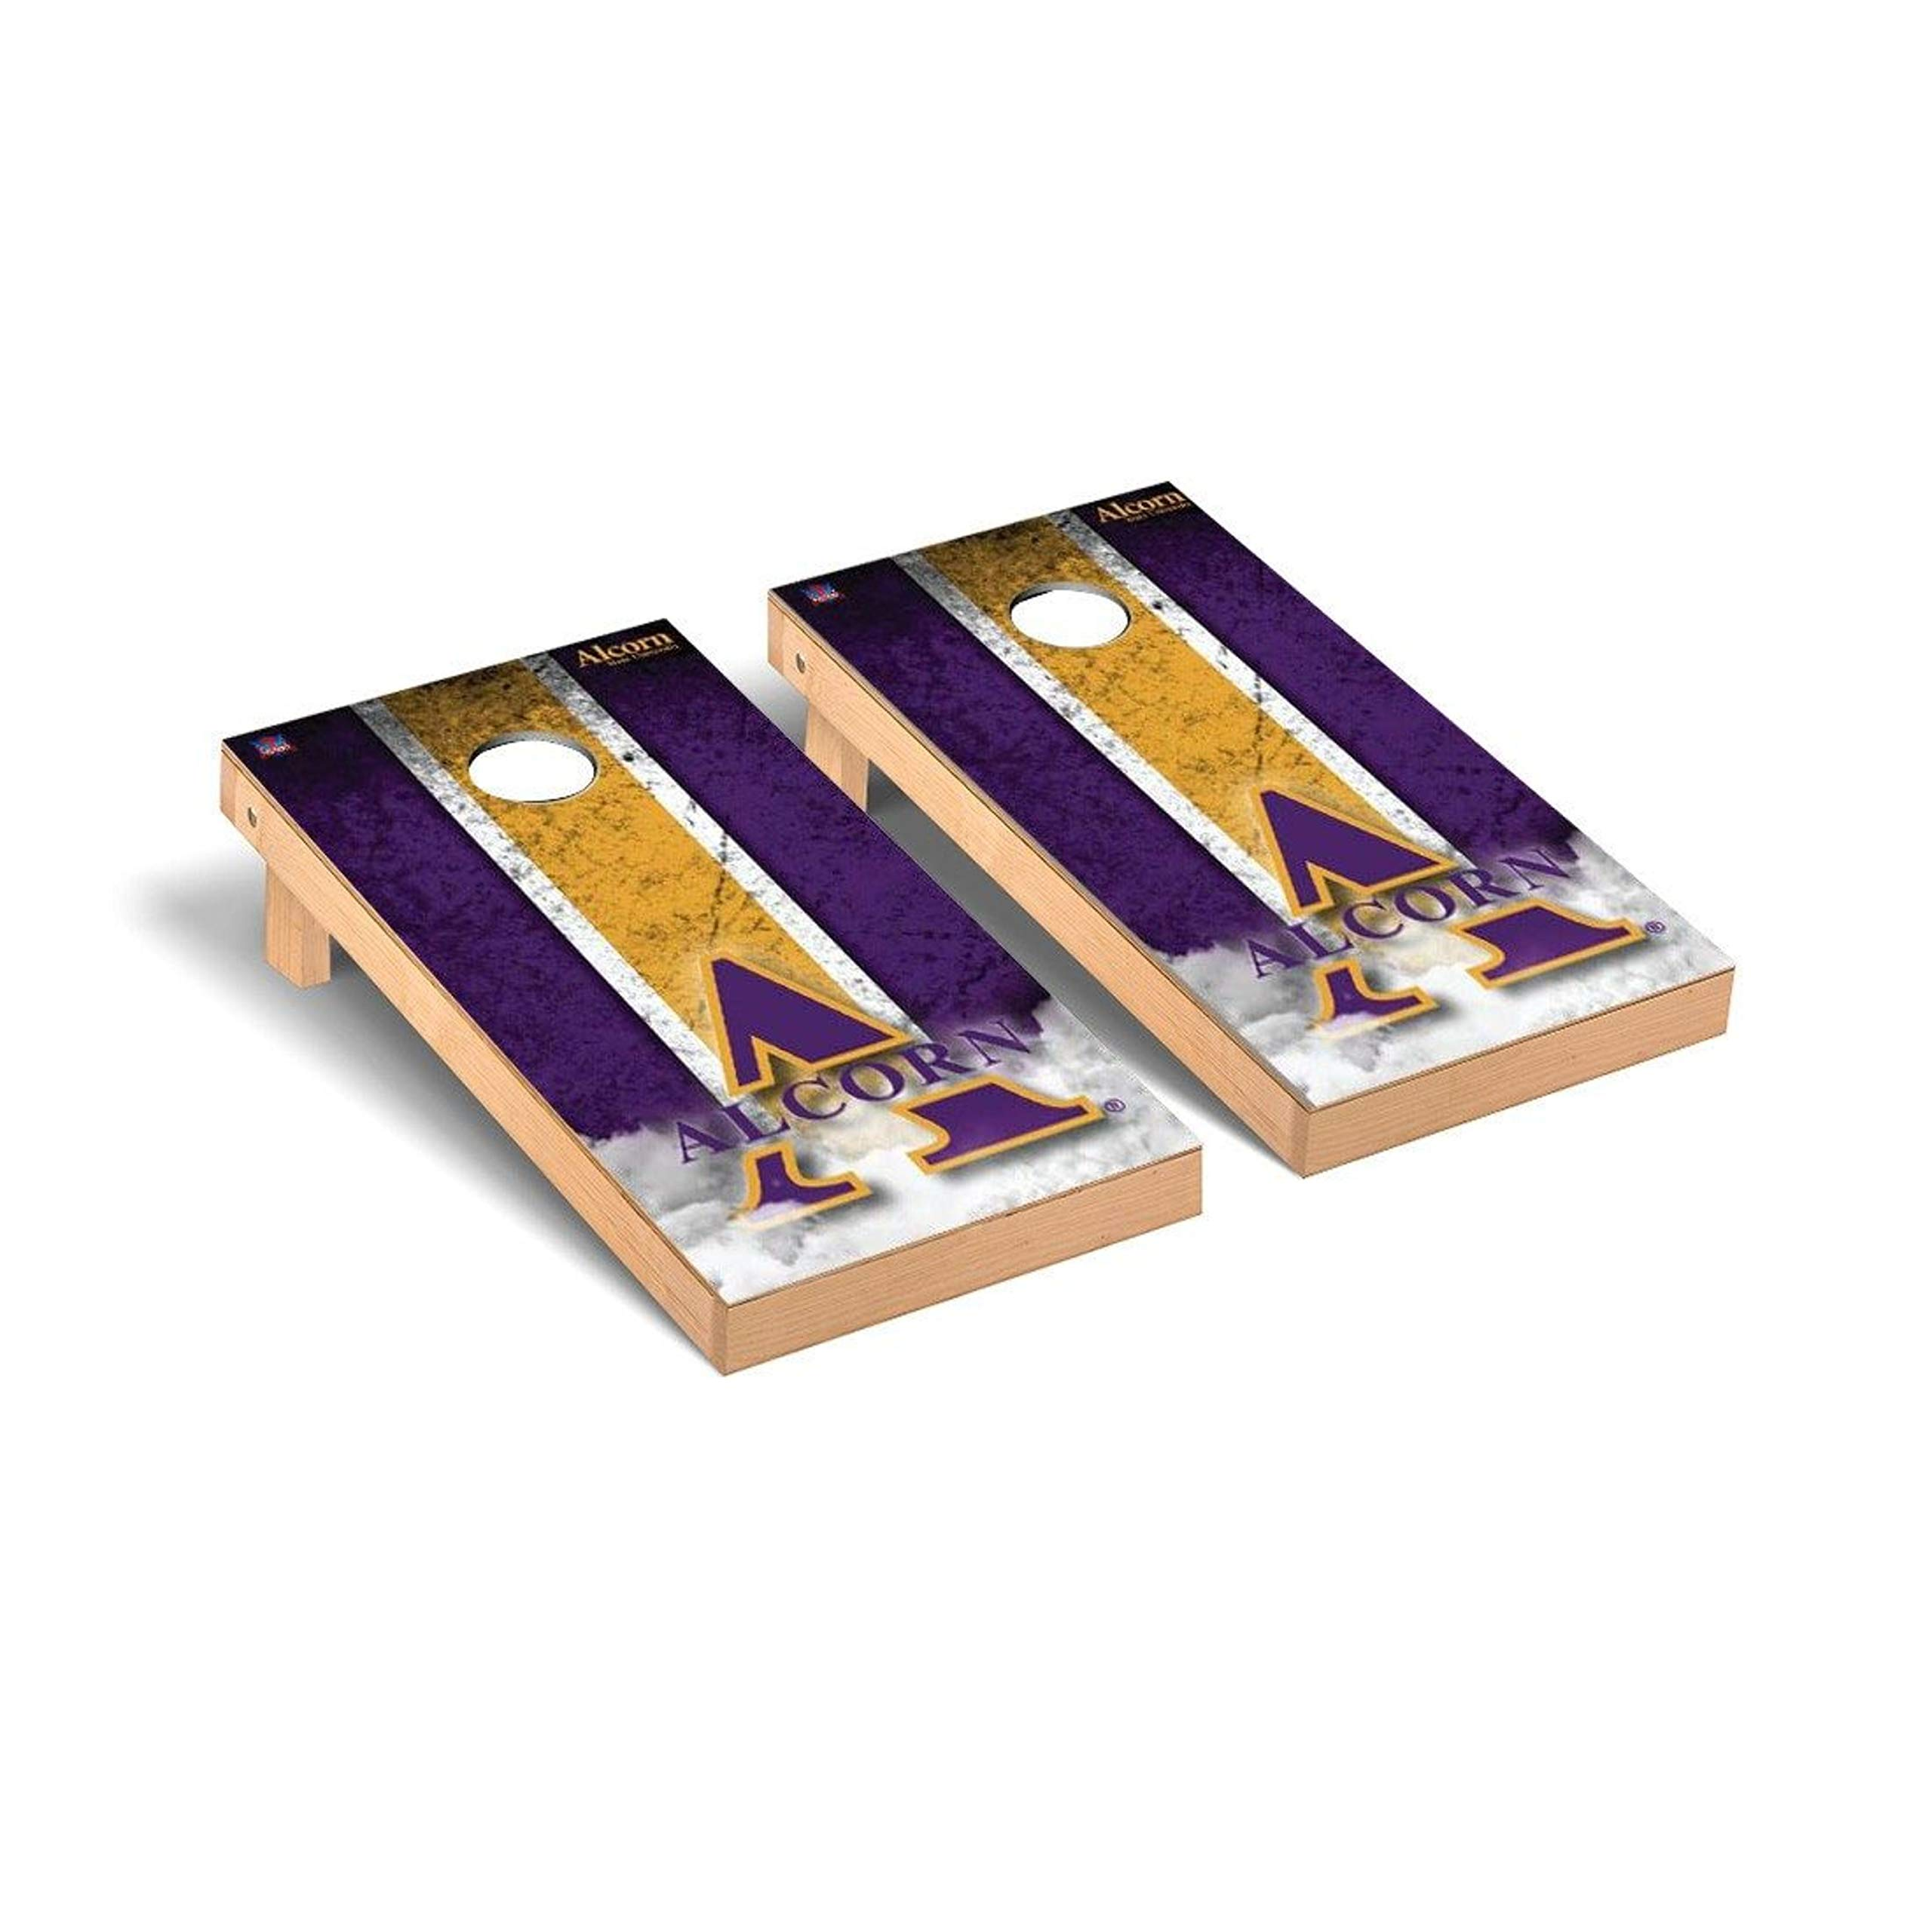 Victory Tailgate Regulation Collegiate NCAA Vintage Series Cornhole Board Set - 2 Boards, 8 Bags - Alcorn State Braves